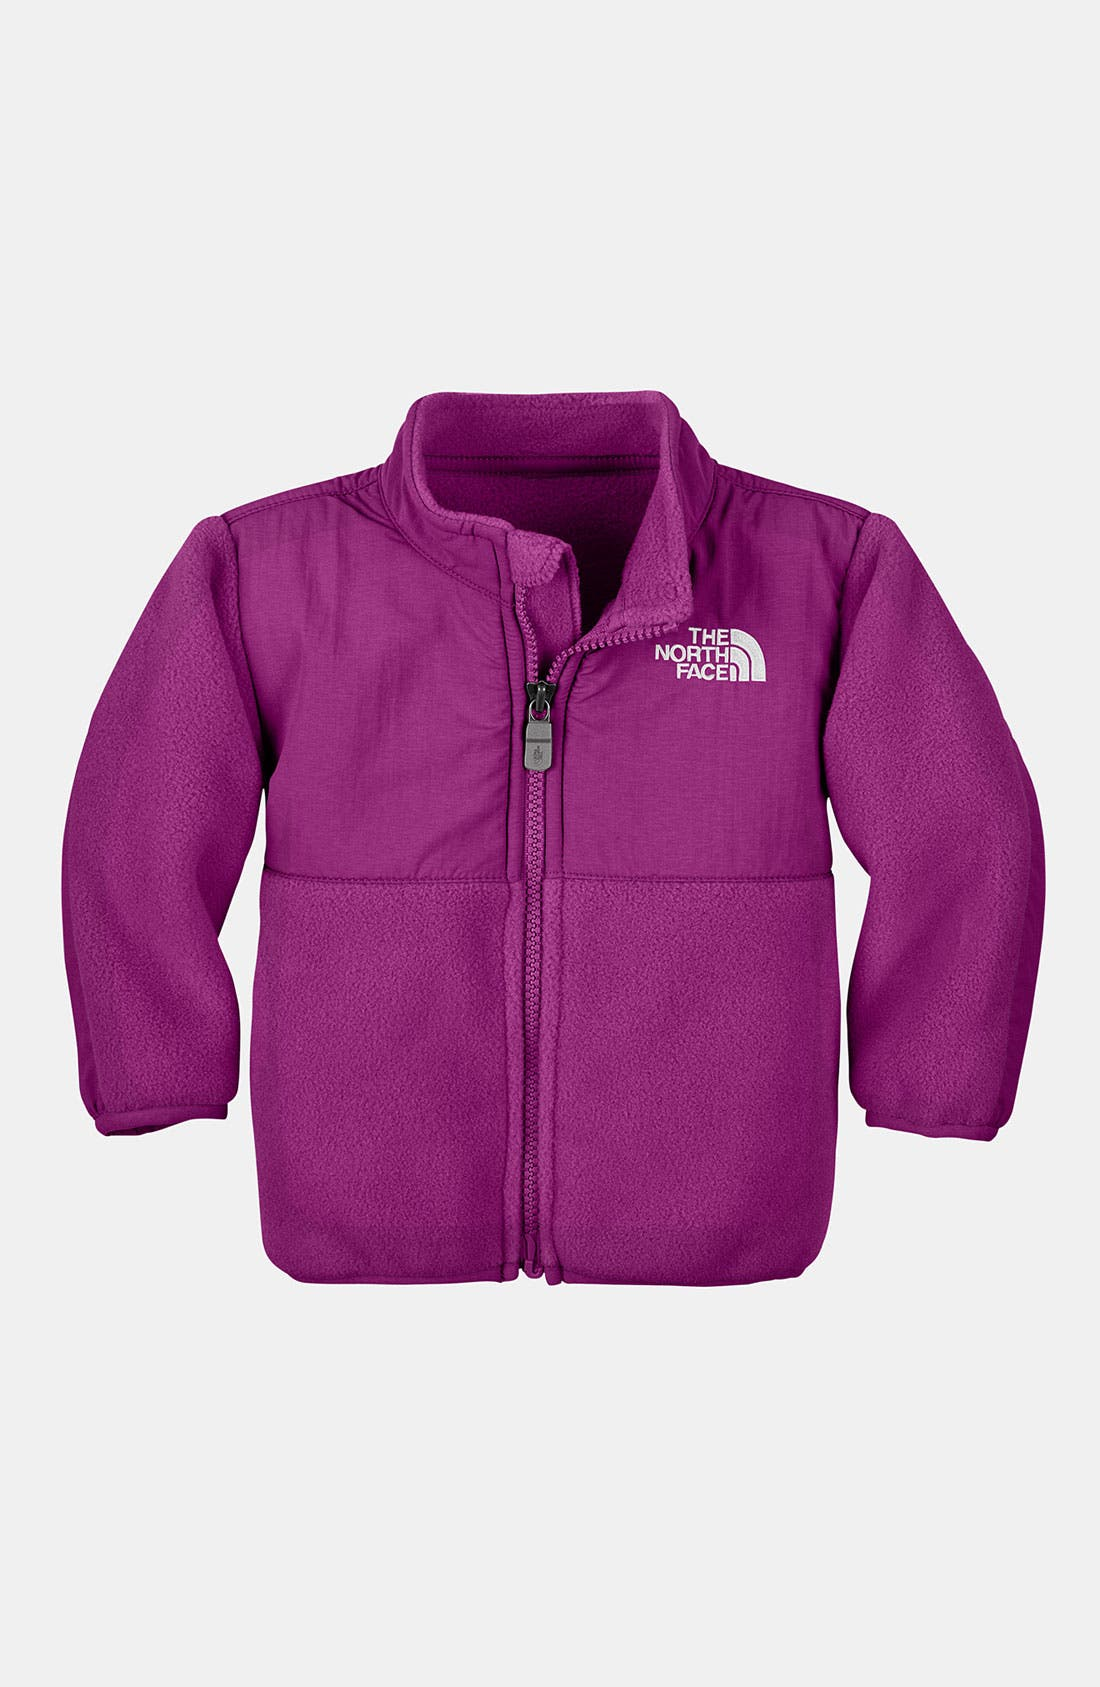 Alternate Image 1 Selected - The North Face 'Denali' Jacket (Infant)